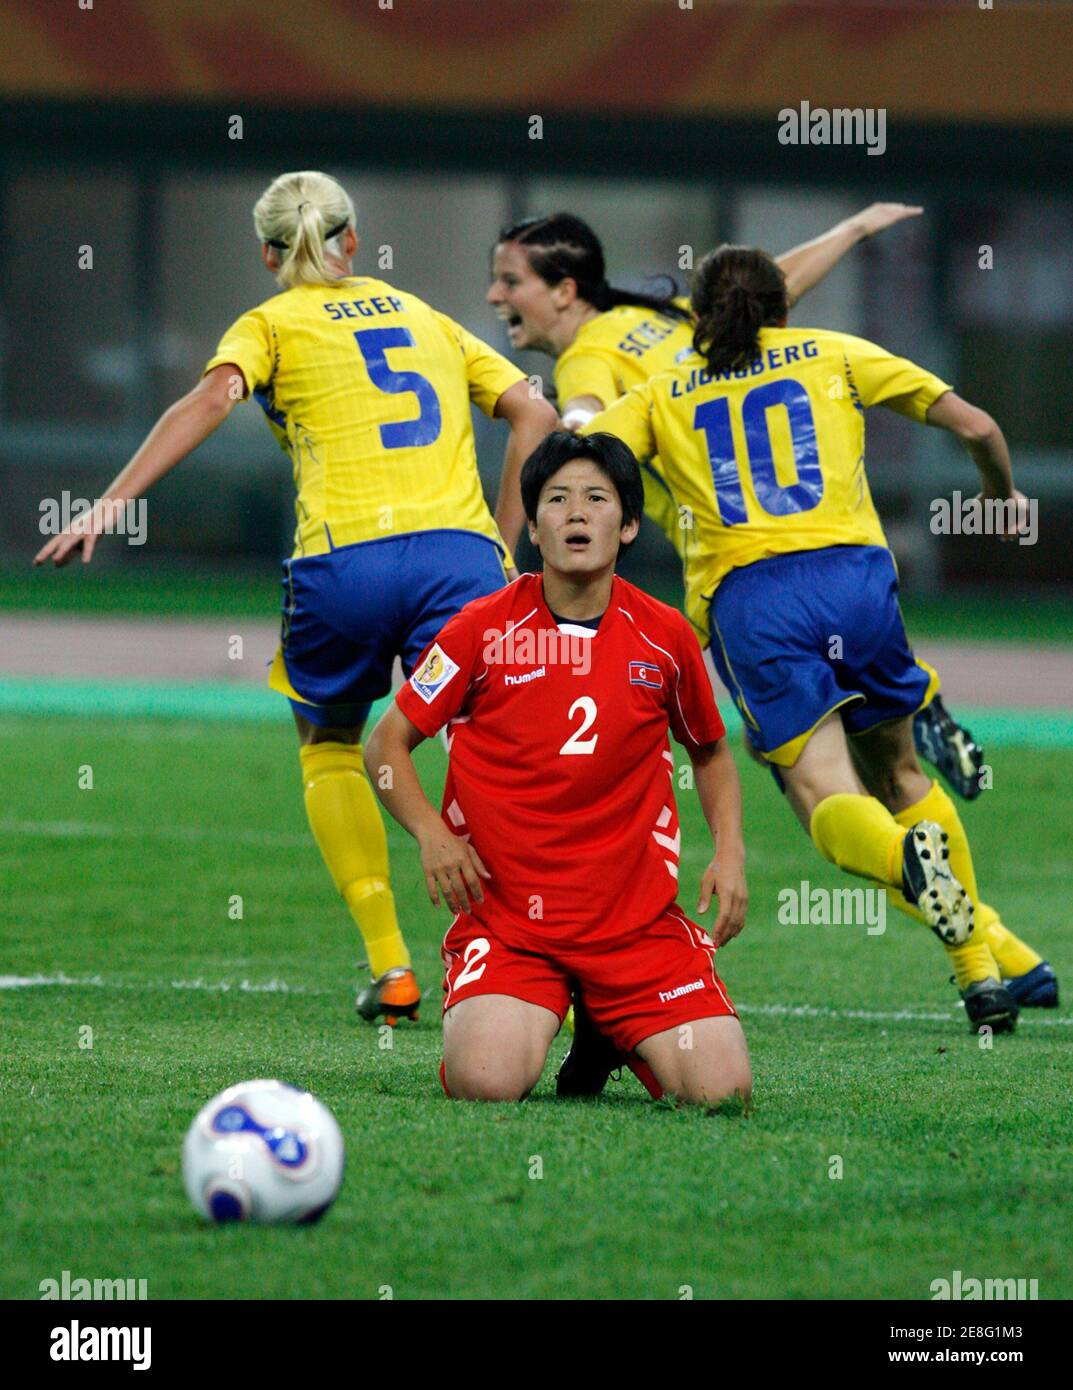 North Korea's Kim Kyong Hwa (2) reacts as Sweden's players celebrate after Charlotta Schelin (C, back) scores, chased by team mates Caroline Seger (5) and Hanna Ljungberg (10) during their Group B soccer match at the 2007 FIFA Women's World Cup in Tianjin September 18, 2007.    REUTERS/Claro Cortes IV   (CHINA) Banque D'Images